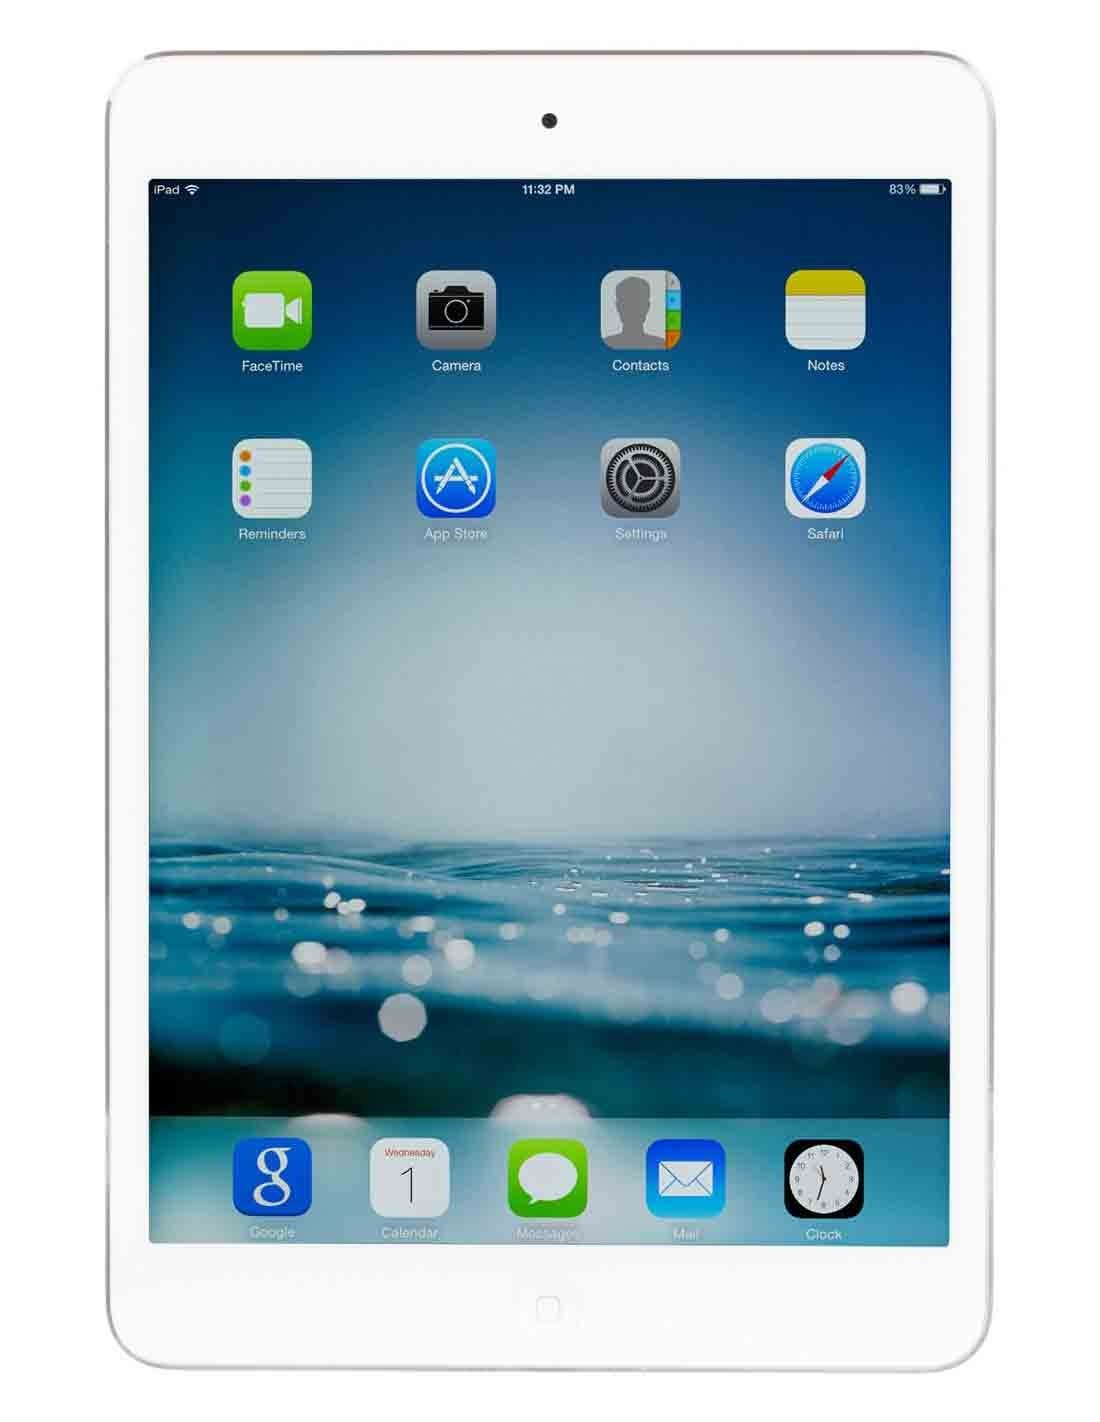 Apple iPad mini 2 Wi-Fi and Cellular - Space Grey ME800B/A at a Cheap Price in Dubai